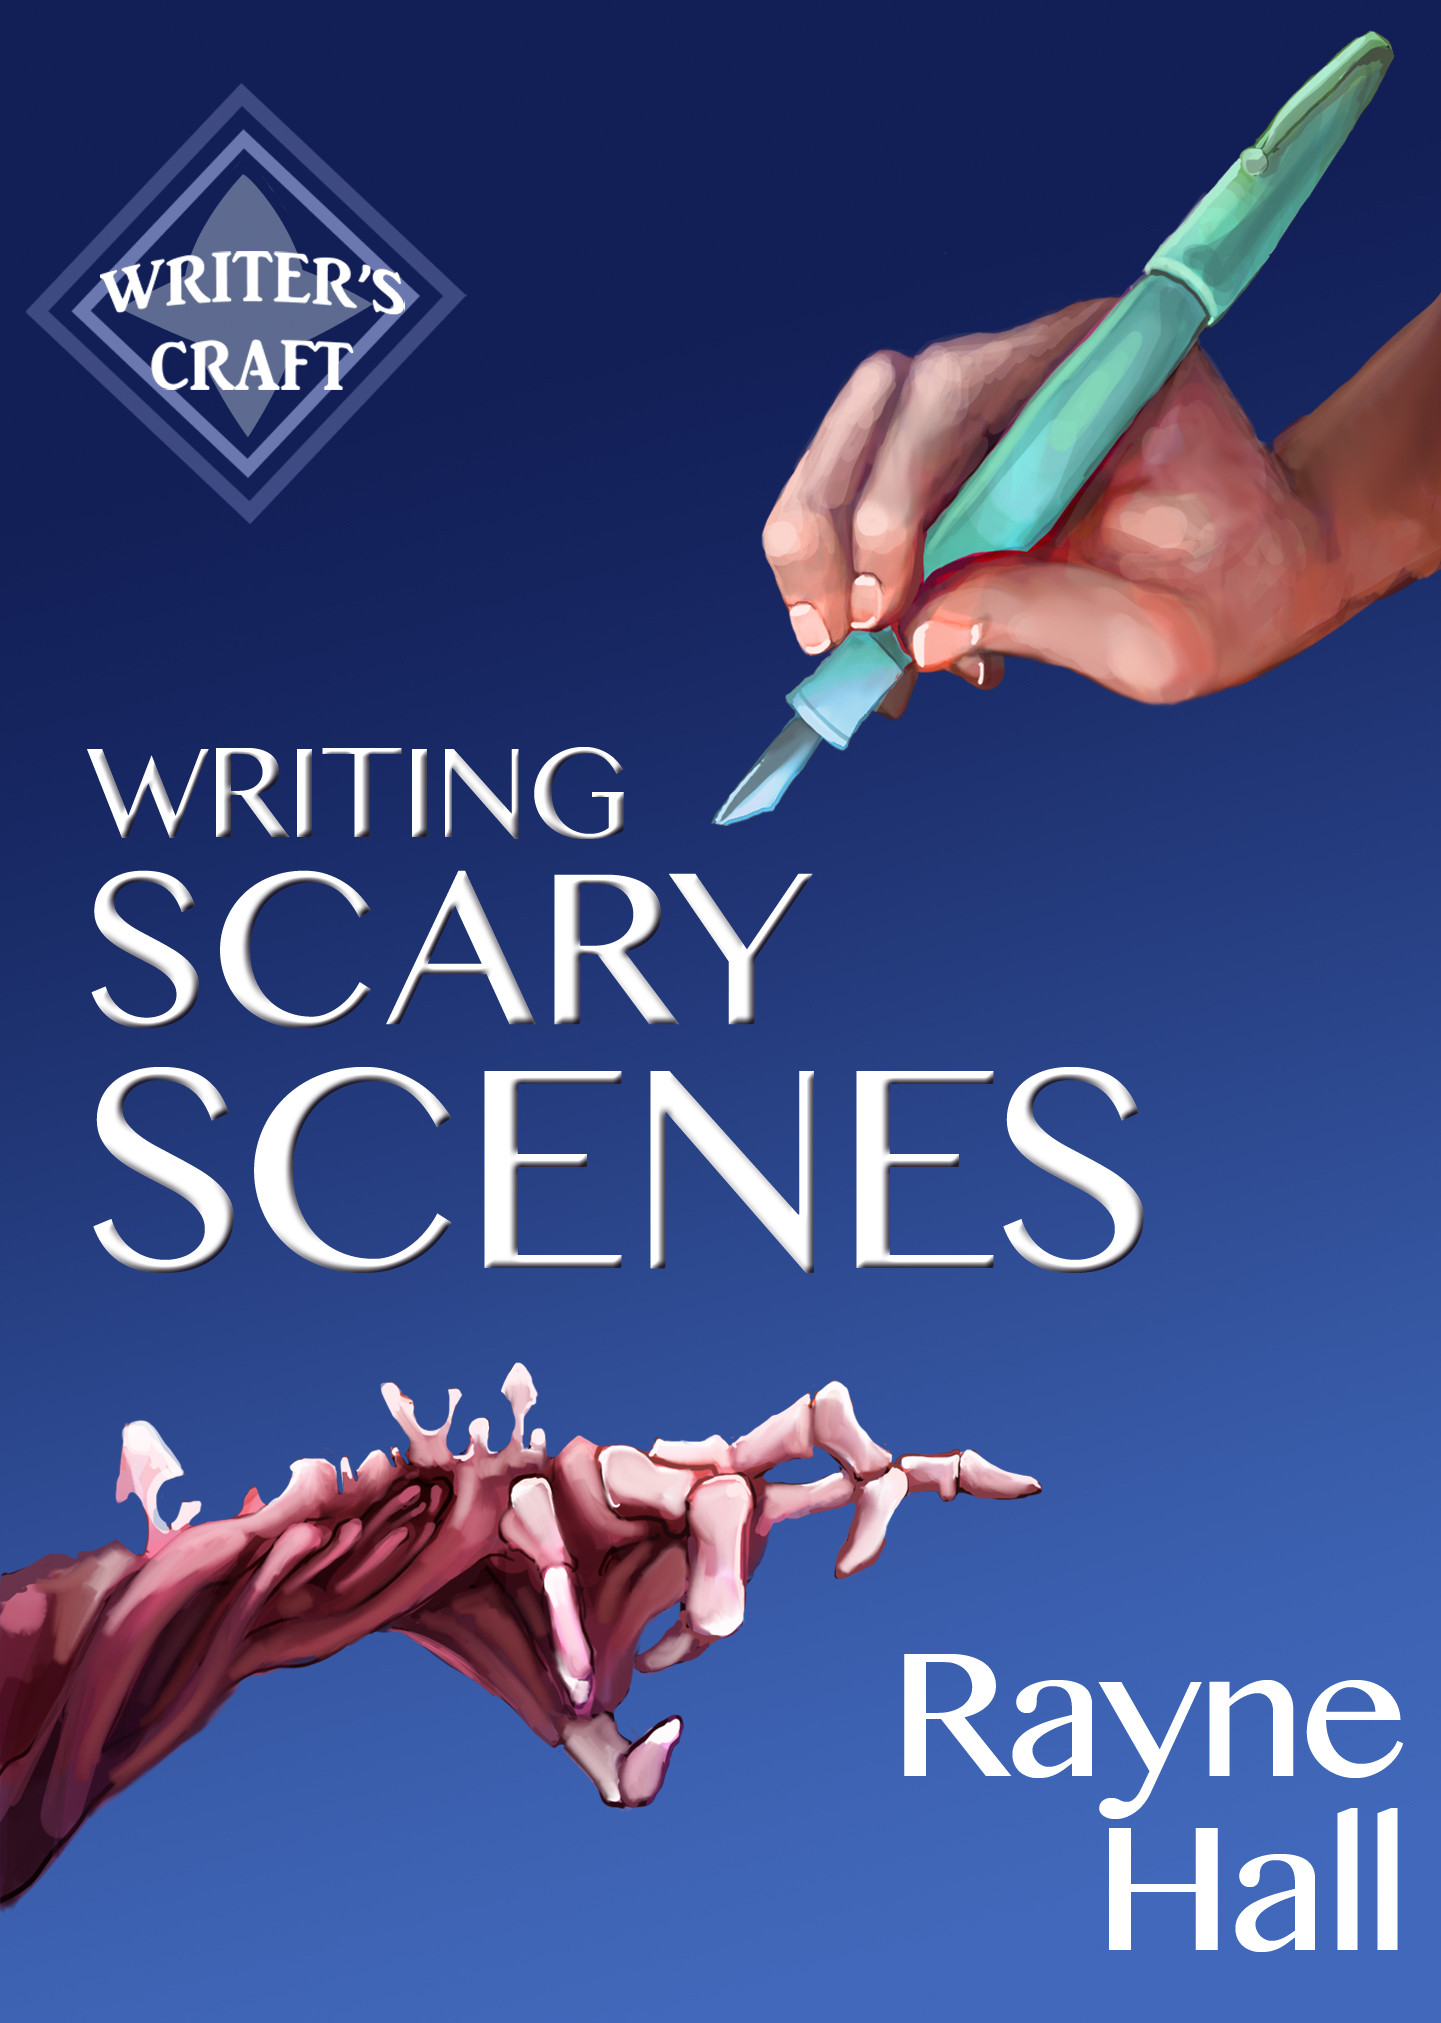 writingscaryscenes-raynehall-cover-2014-01-27